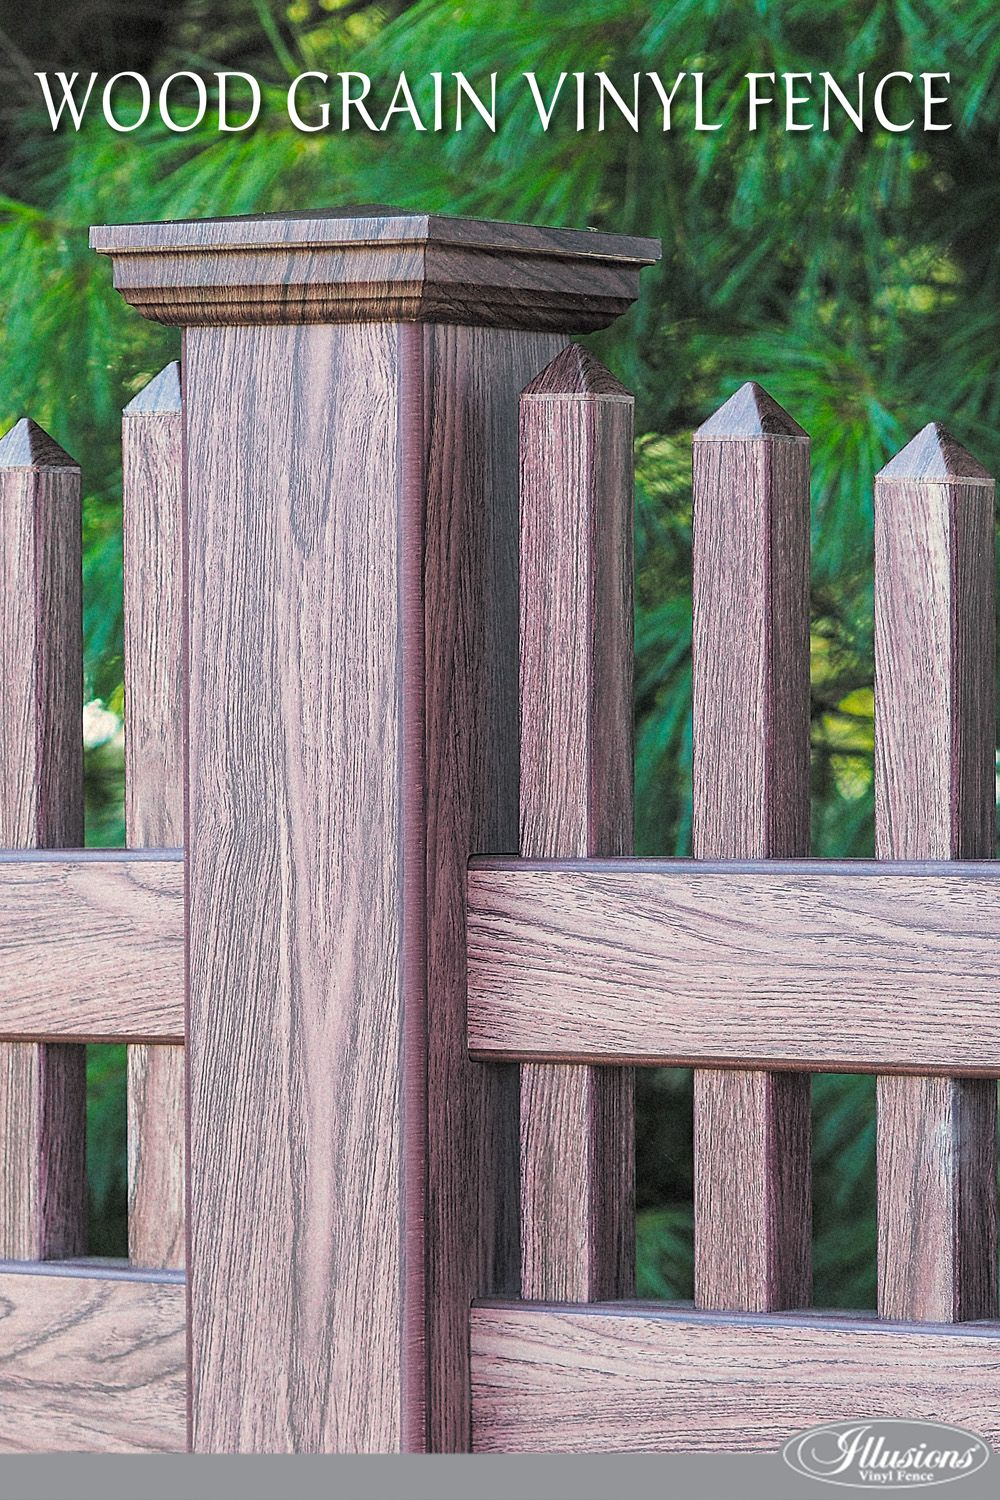 So You Re Looking For A Fence You Like Wood But Don T